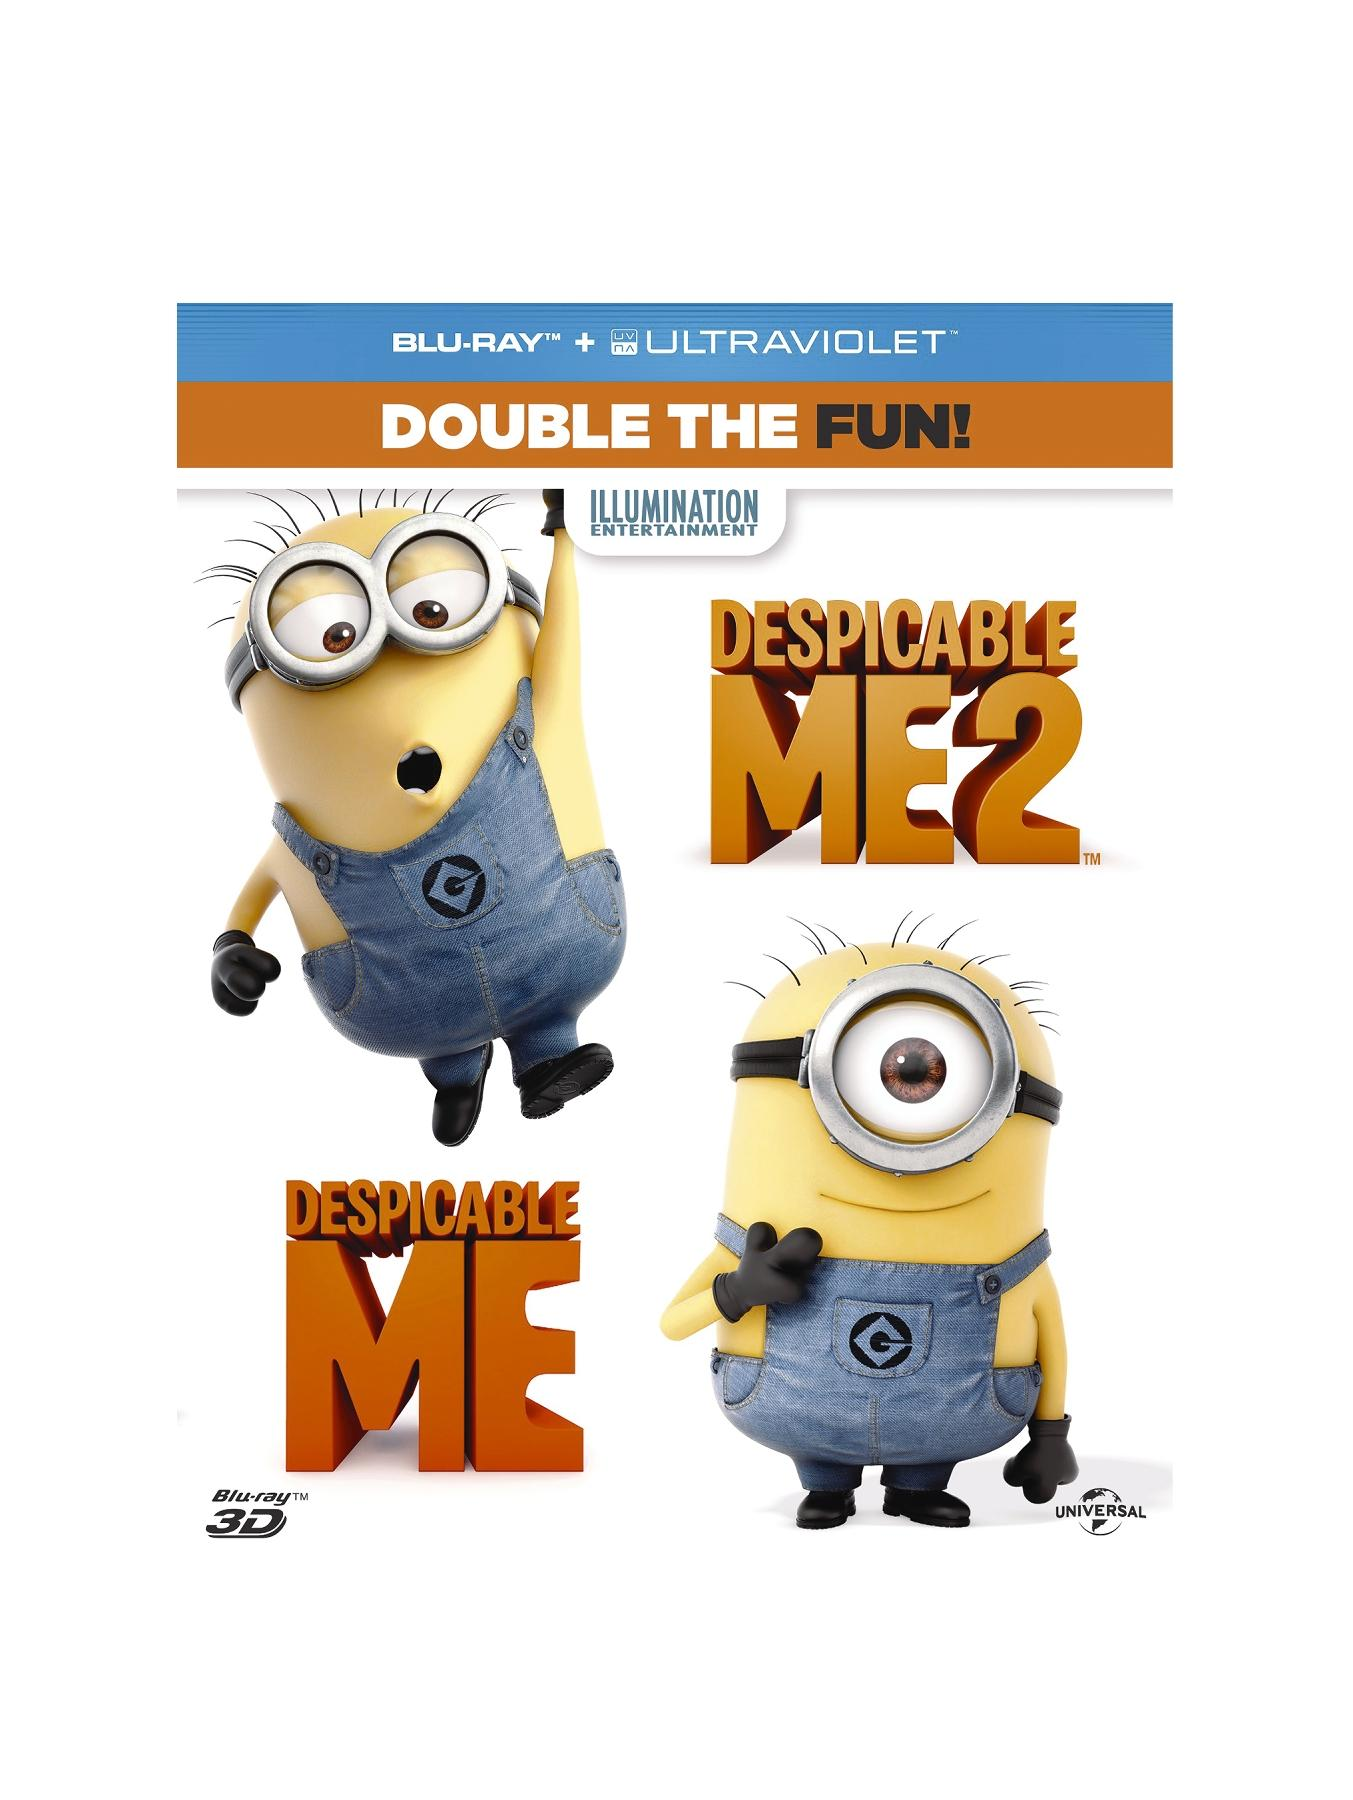 Despicable Me 1-2 Blu-ray